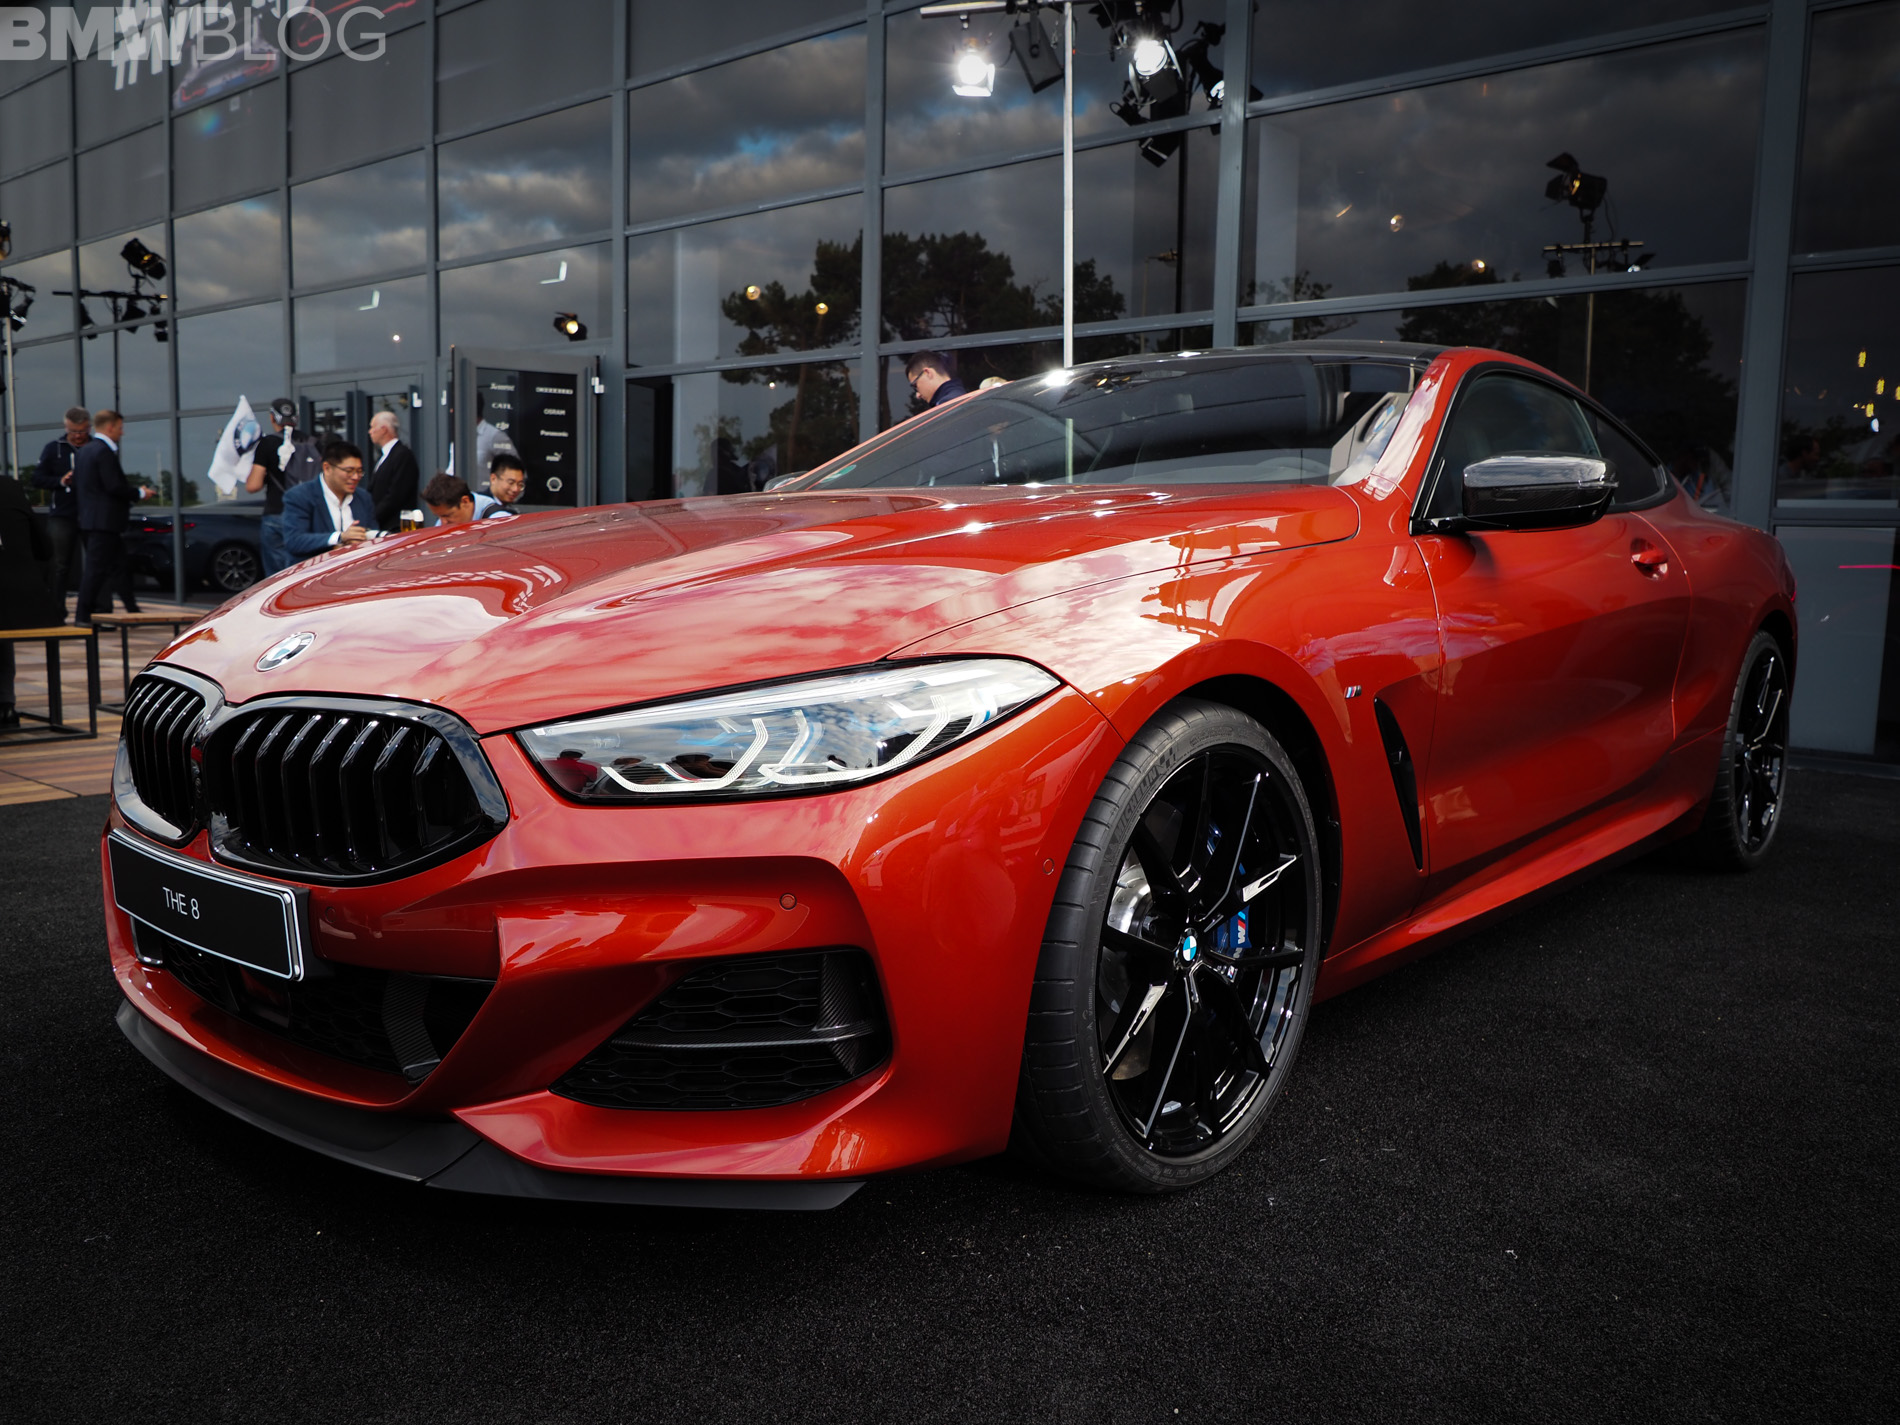 We Bring You Live Videos Of The New Bmw 8 Series Coupe